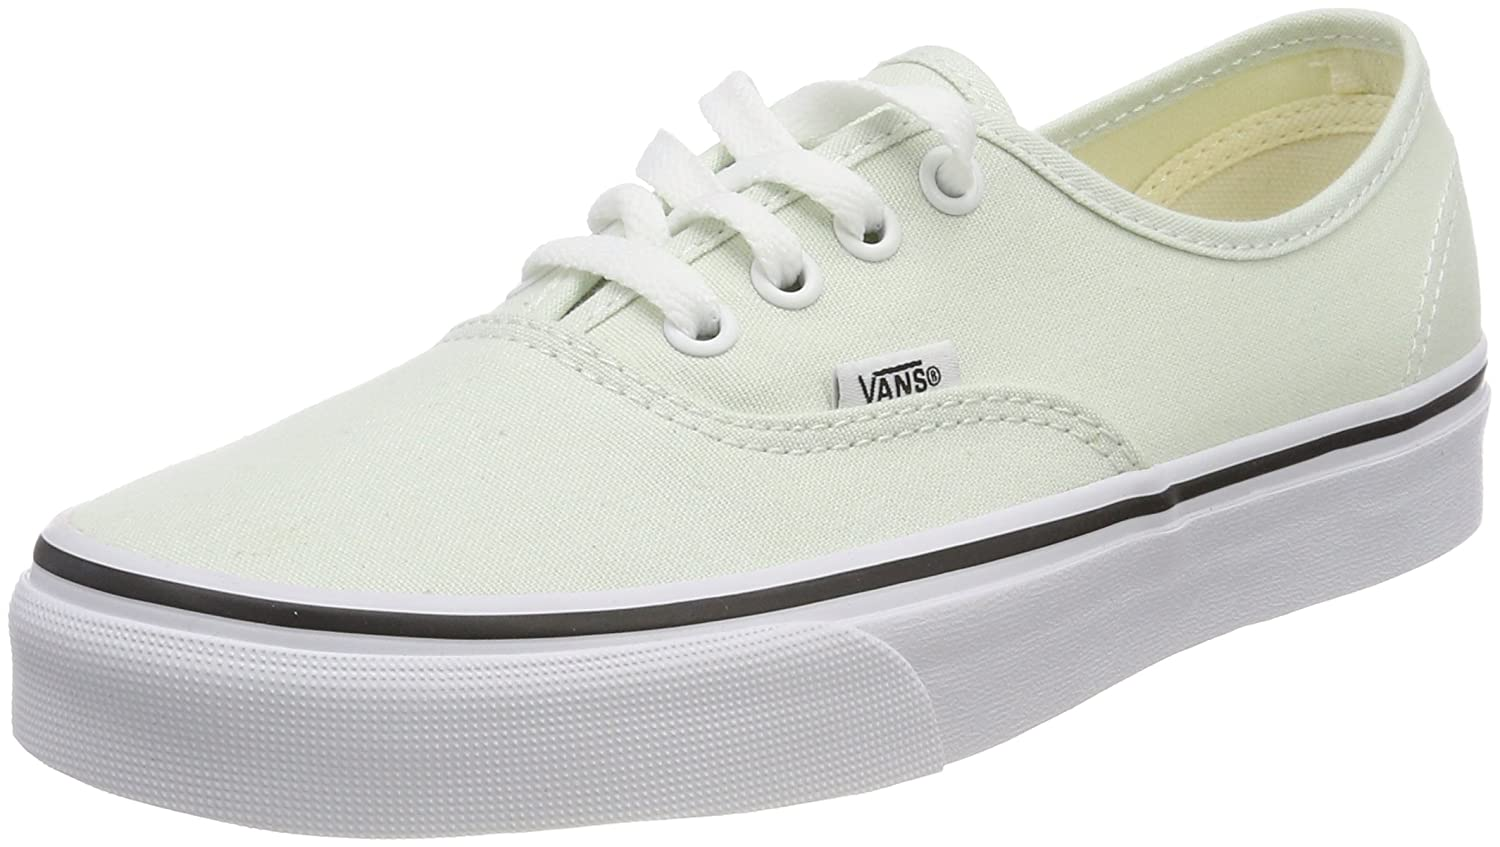 Vans Unisex Authentic Canvas Shoes B074H7PP4J 6 M US Women / 4.5 M US Men|Blue Flower/True White